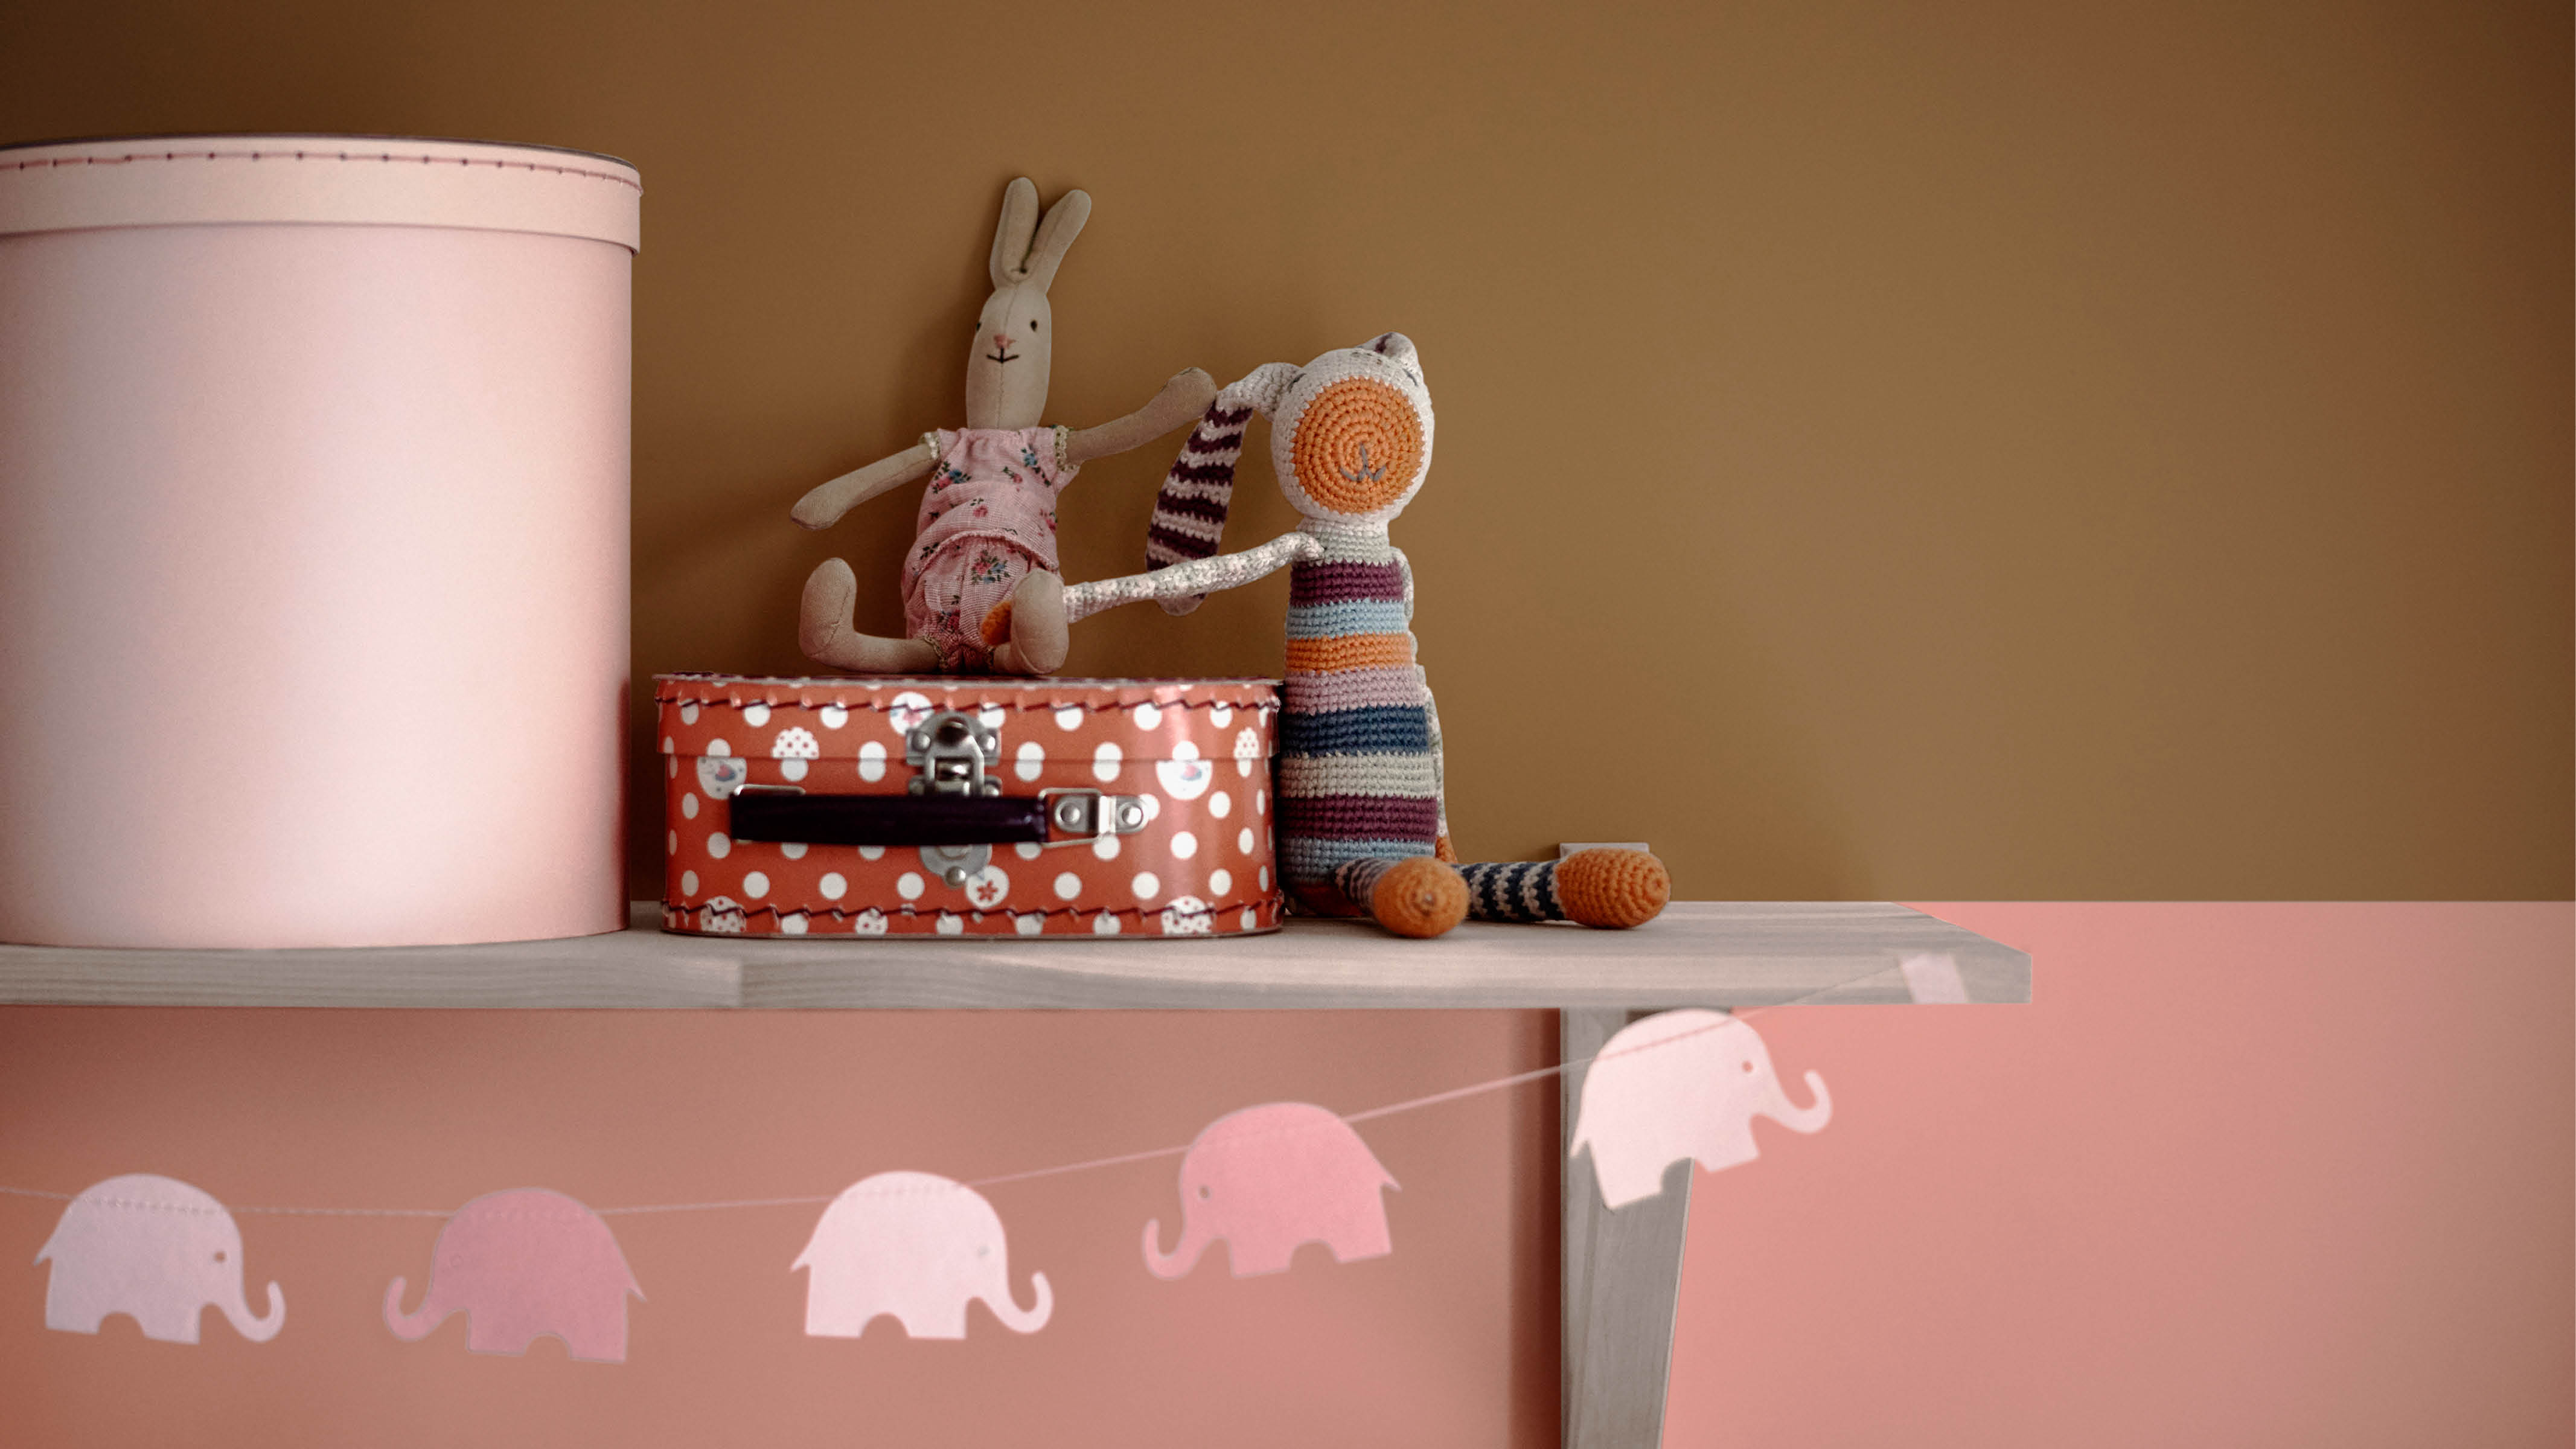 If you have your heart set on pink but want to give it a modern edge, try pairing it with ochre